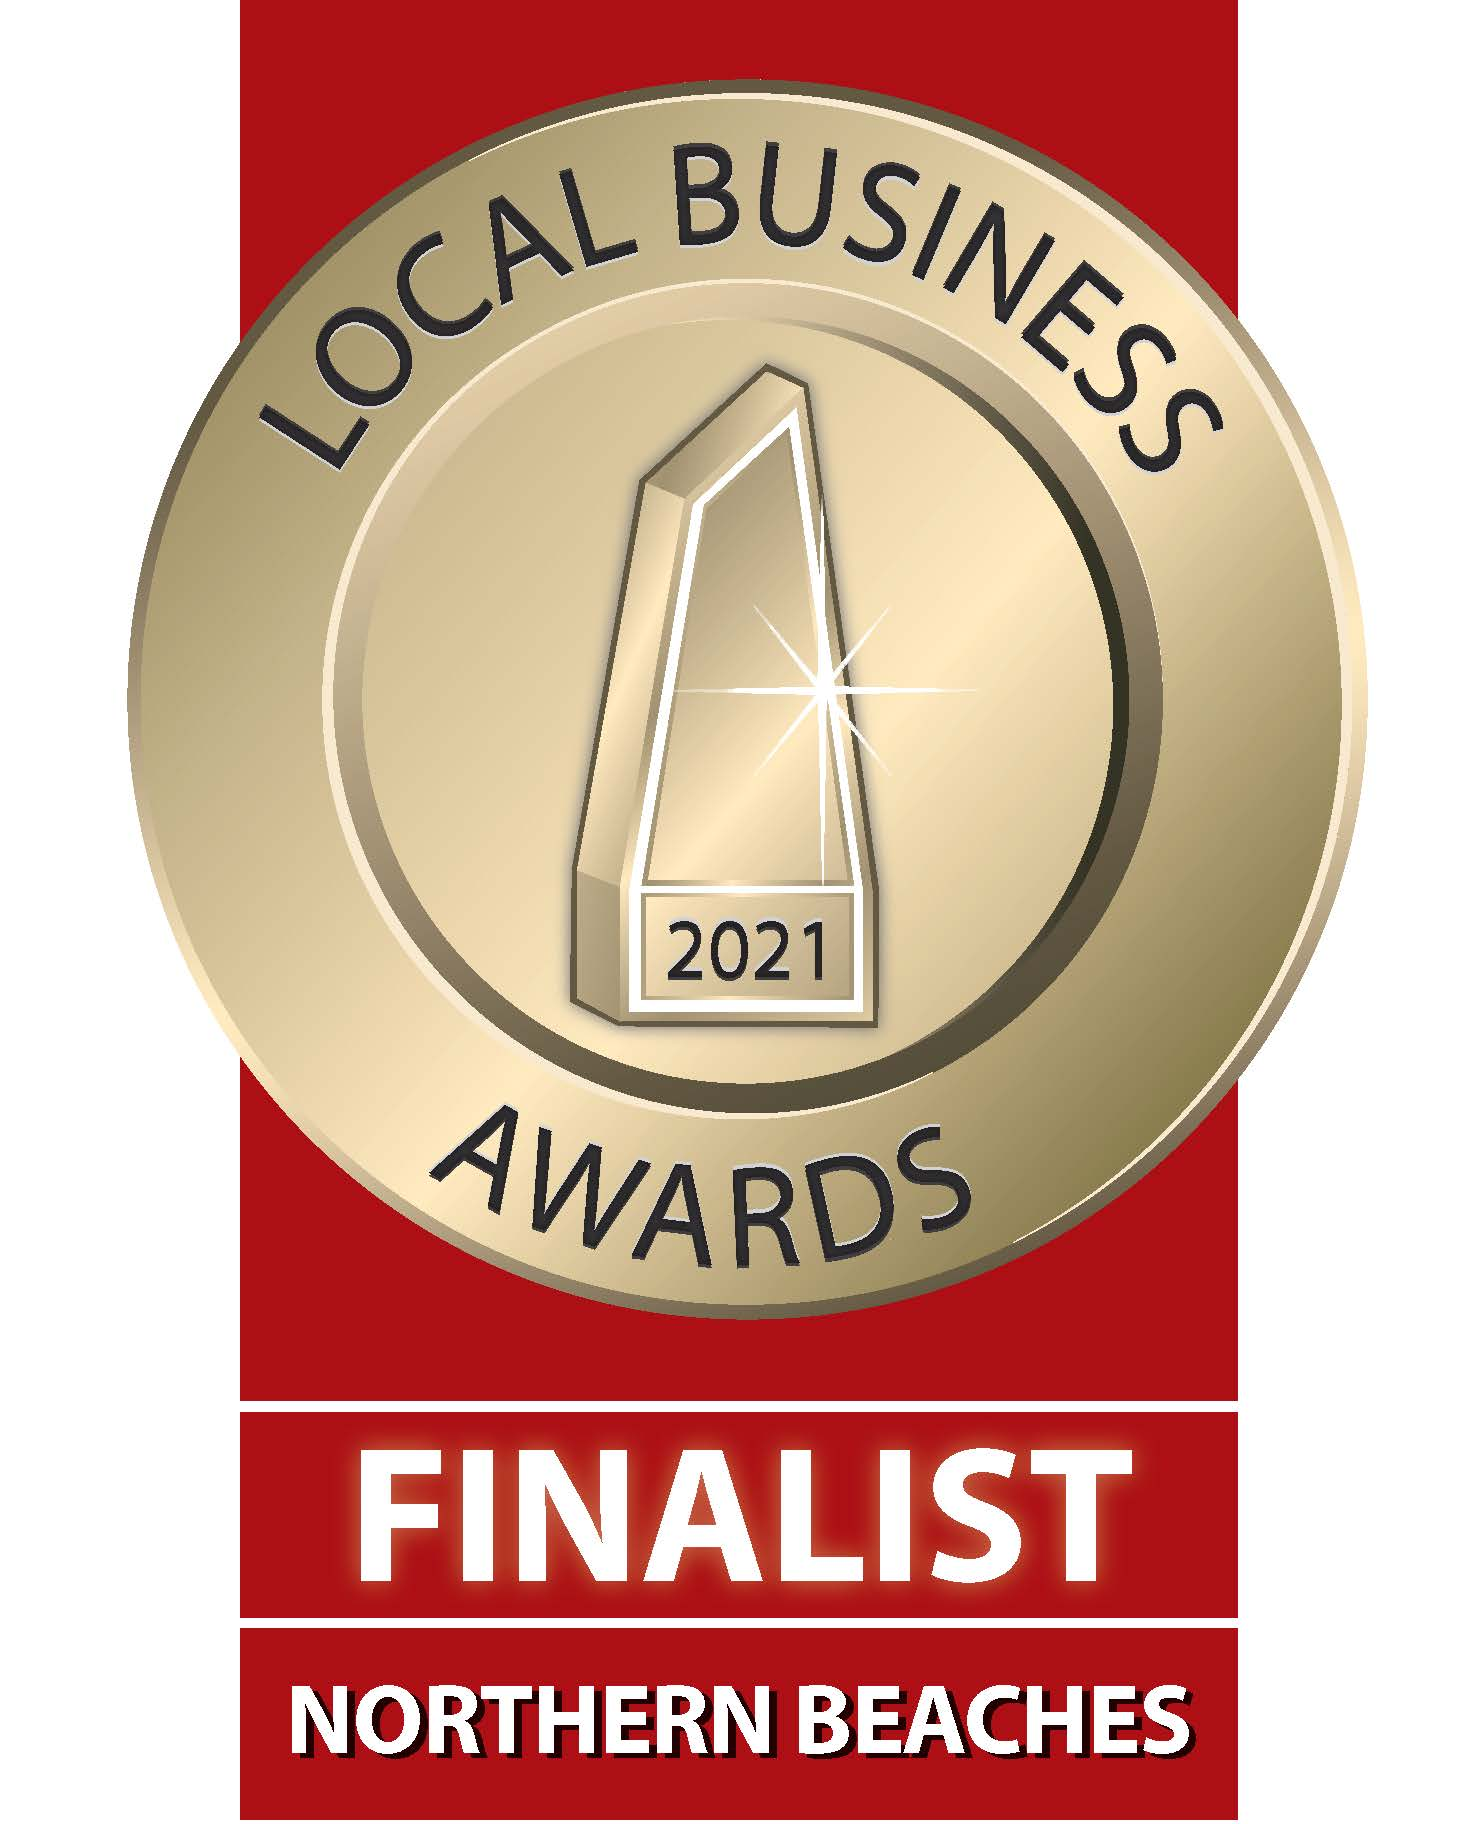 2021_Local Business Awards - Finalist - Northern Beaches